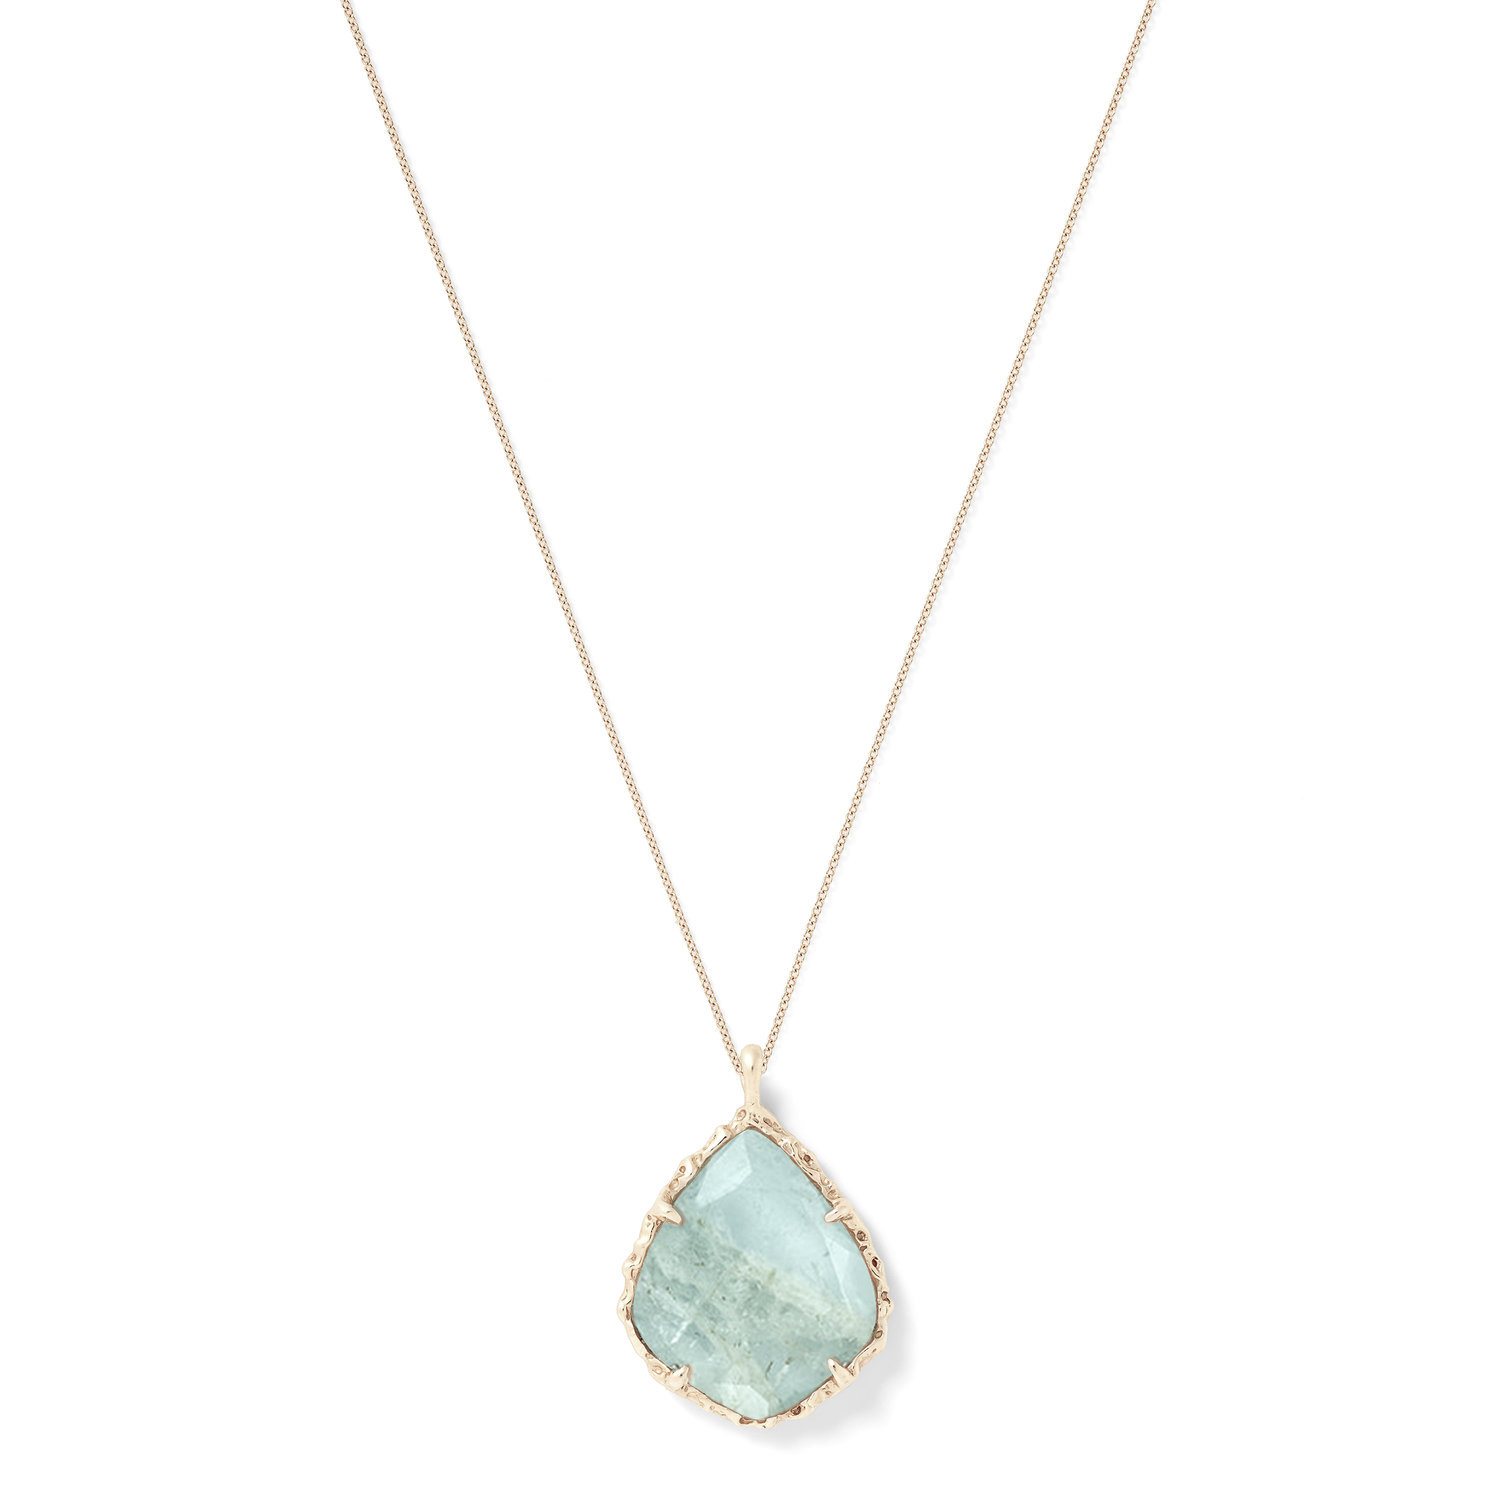 Trapezoid+Necklace+in+Aquamarine.jpg